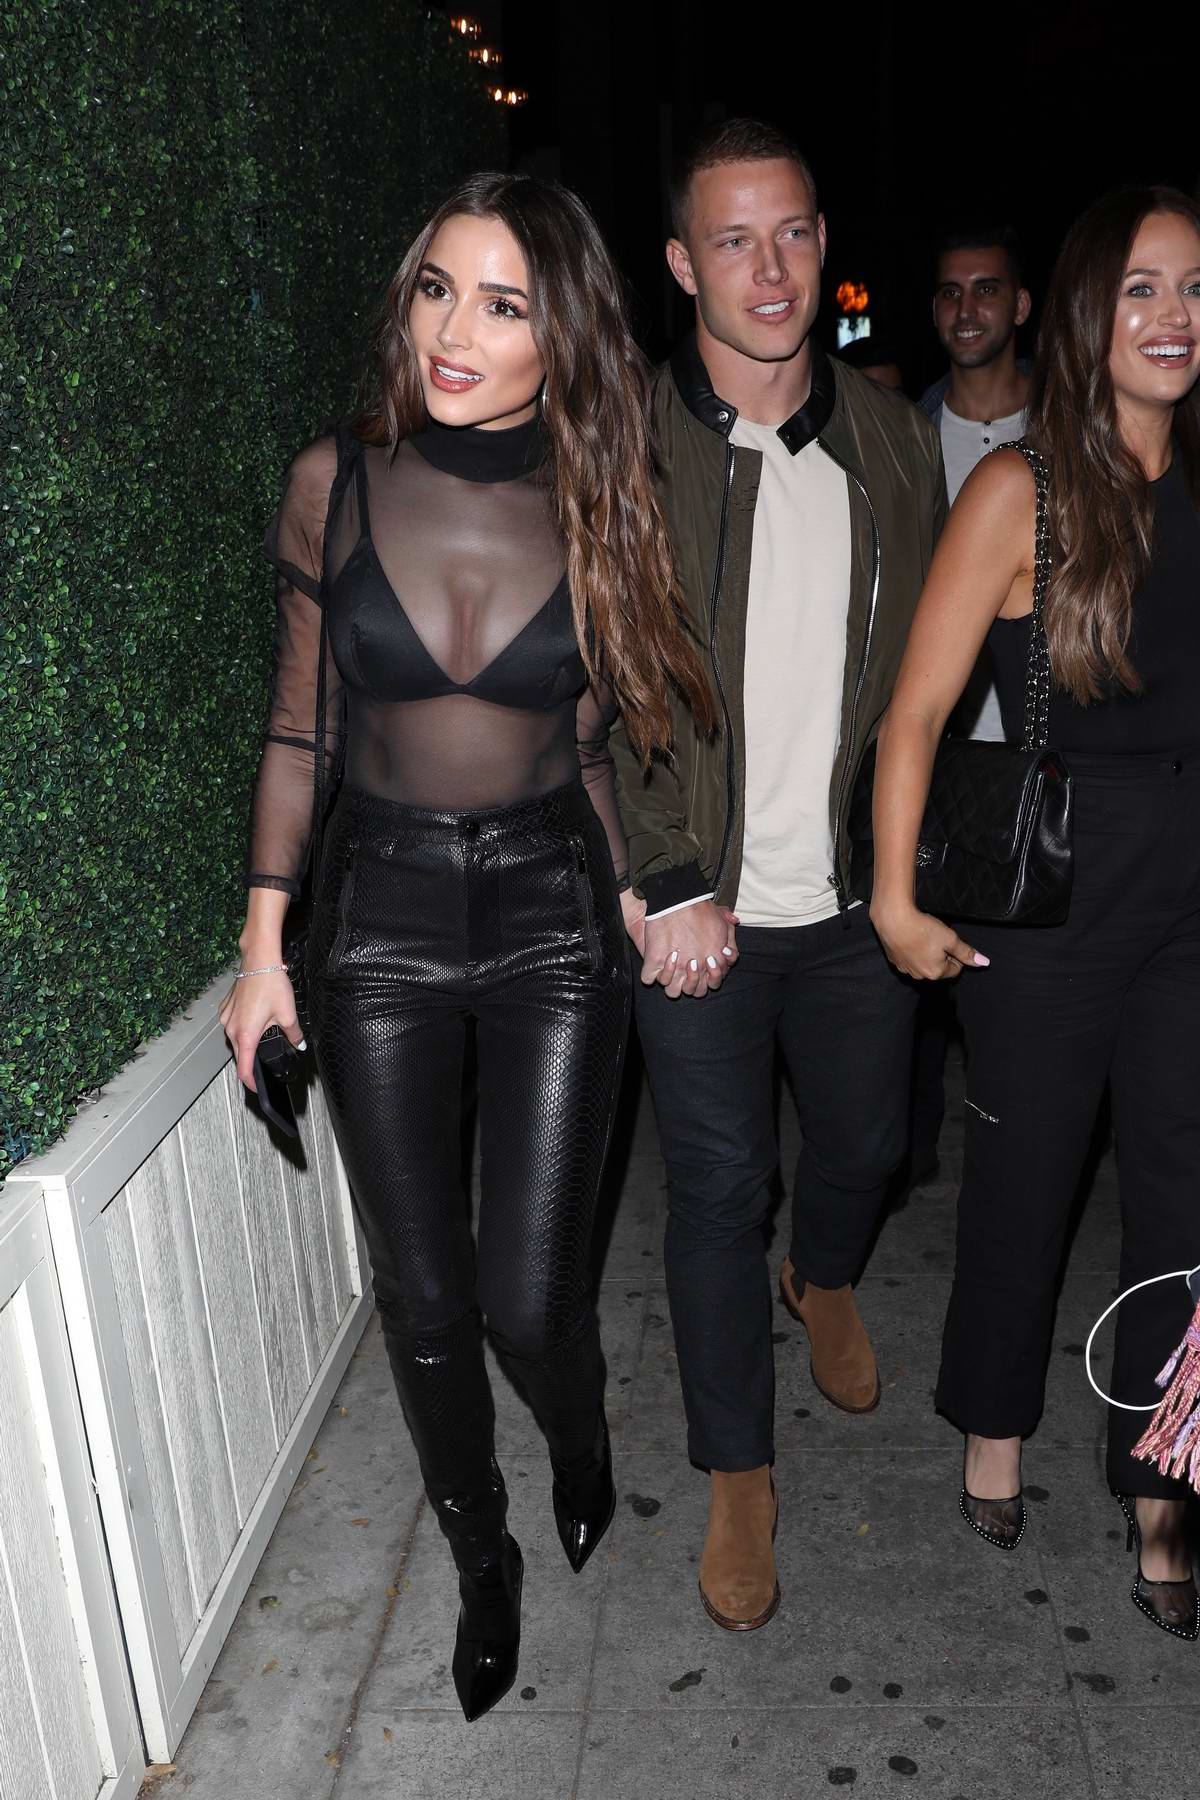 Olivia Culpo rocks a sheer top as she and boyfriend Christian McCaffrey head to the Delilah in West Hollywood, California